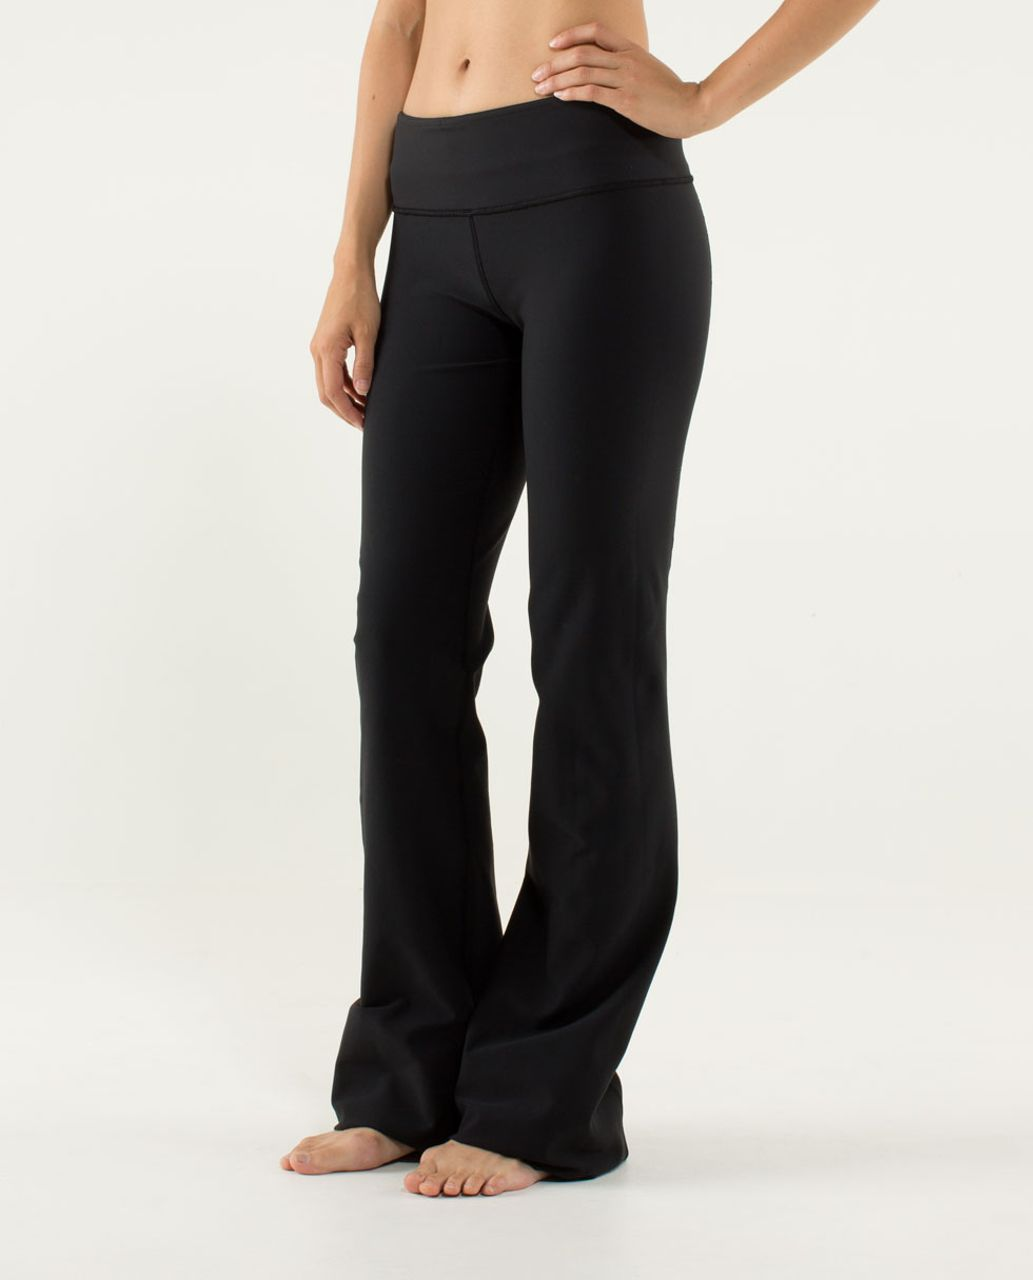 Lululemon Groove Pant (Regular) - Black / Ziggy Wee September Black / Hyper Stripe Angel Wing